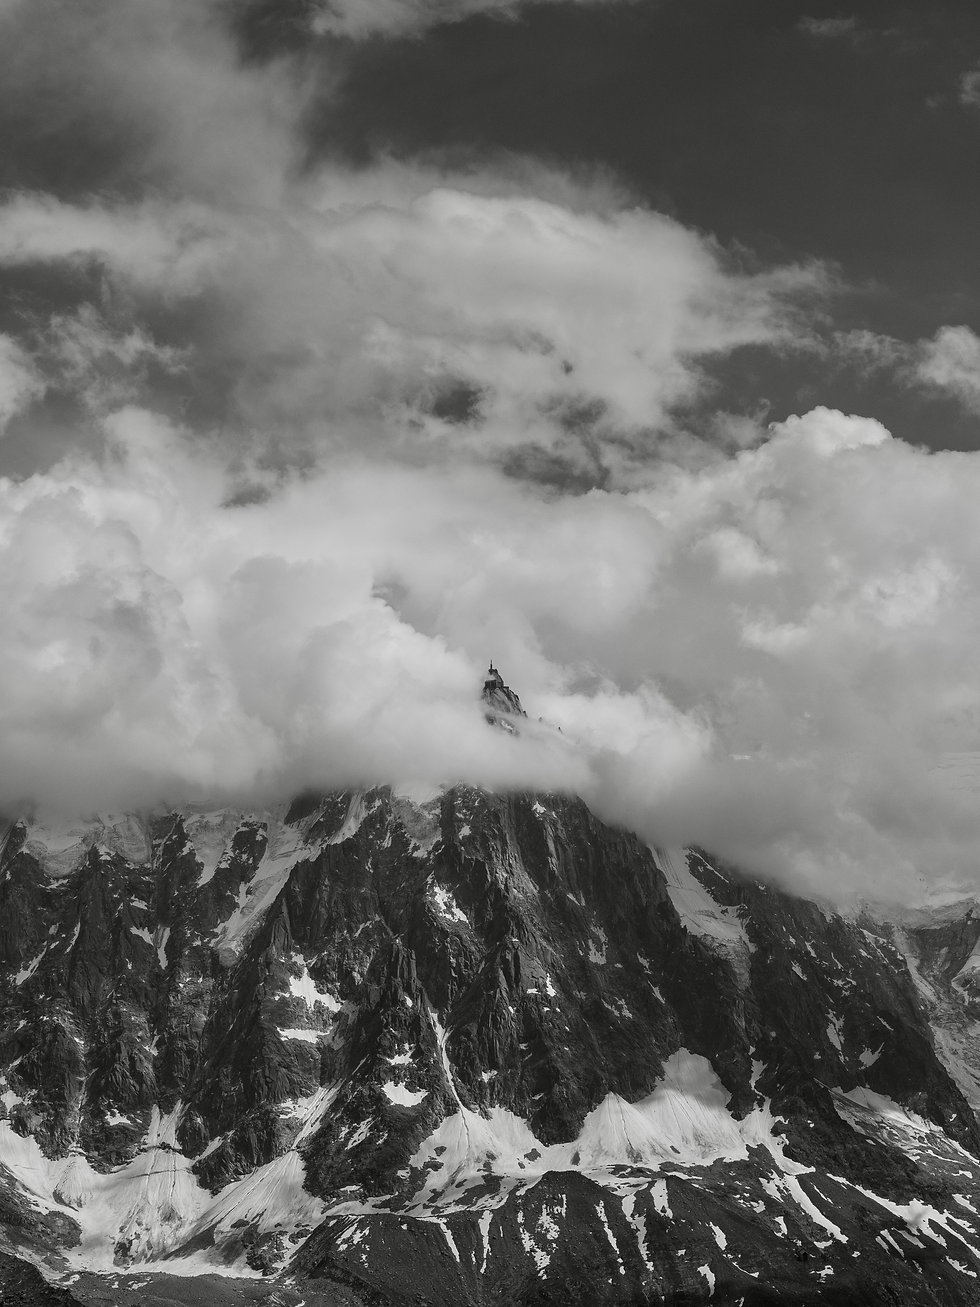 The Aiguille du Midi crossing the summer clouds